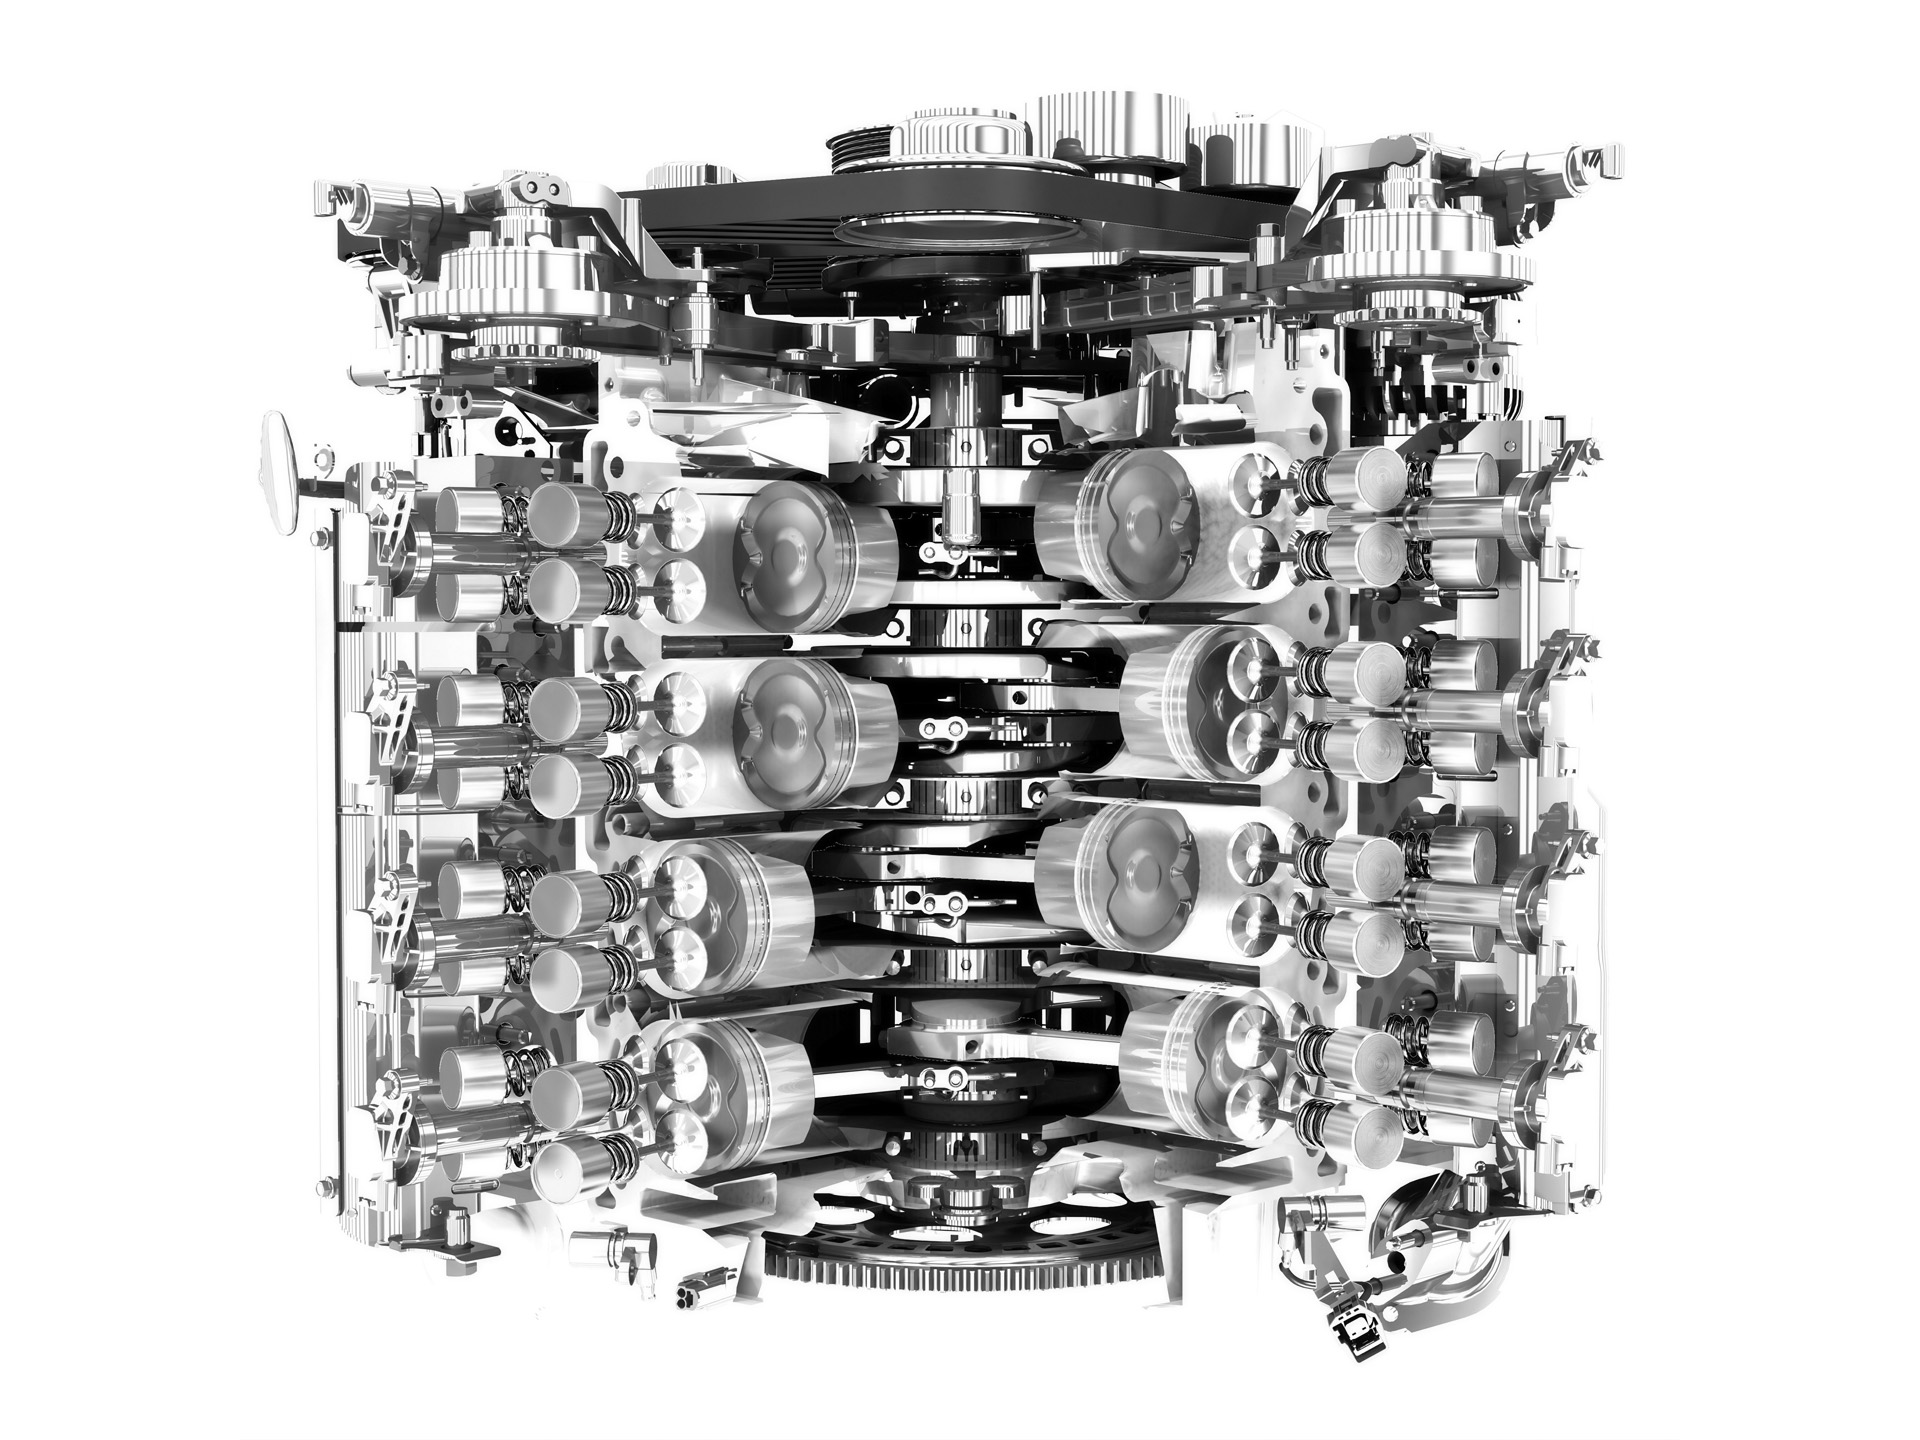 Sample P1868 Engine